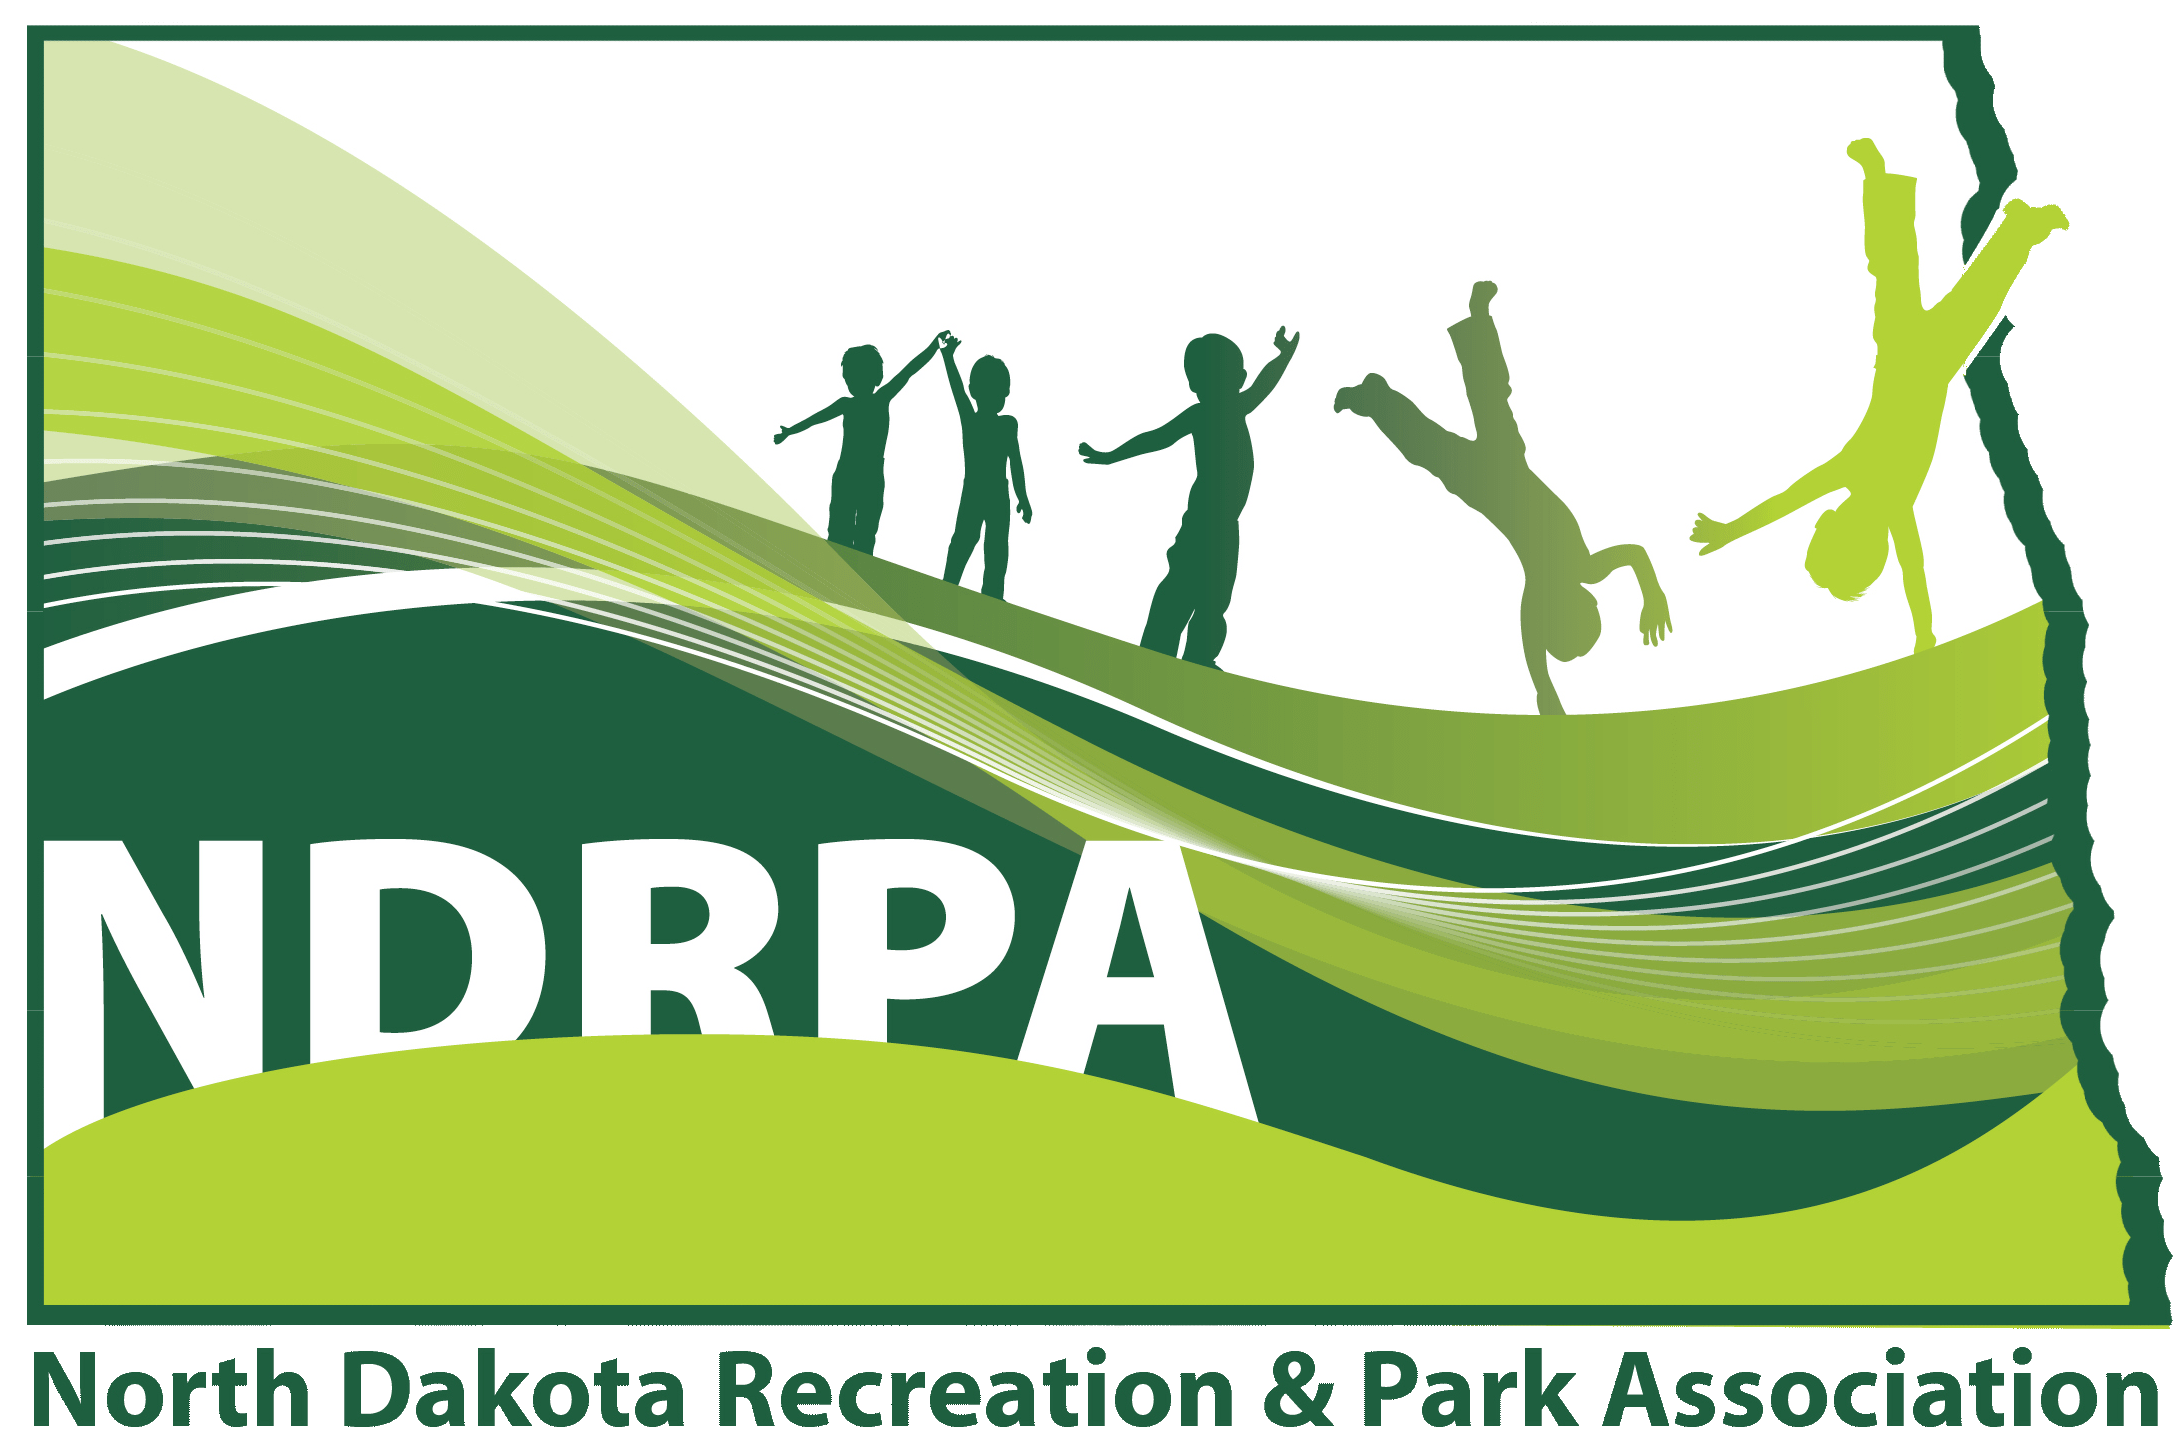 North Dakota Recreation & Park Association